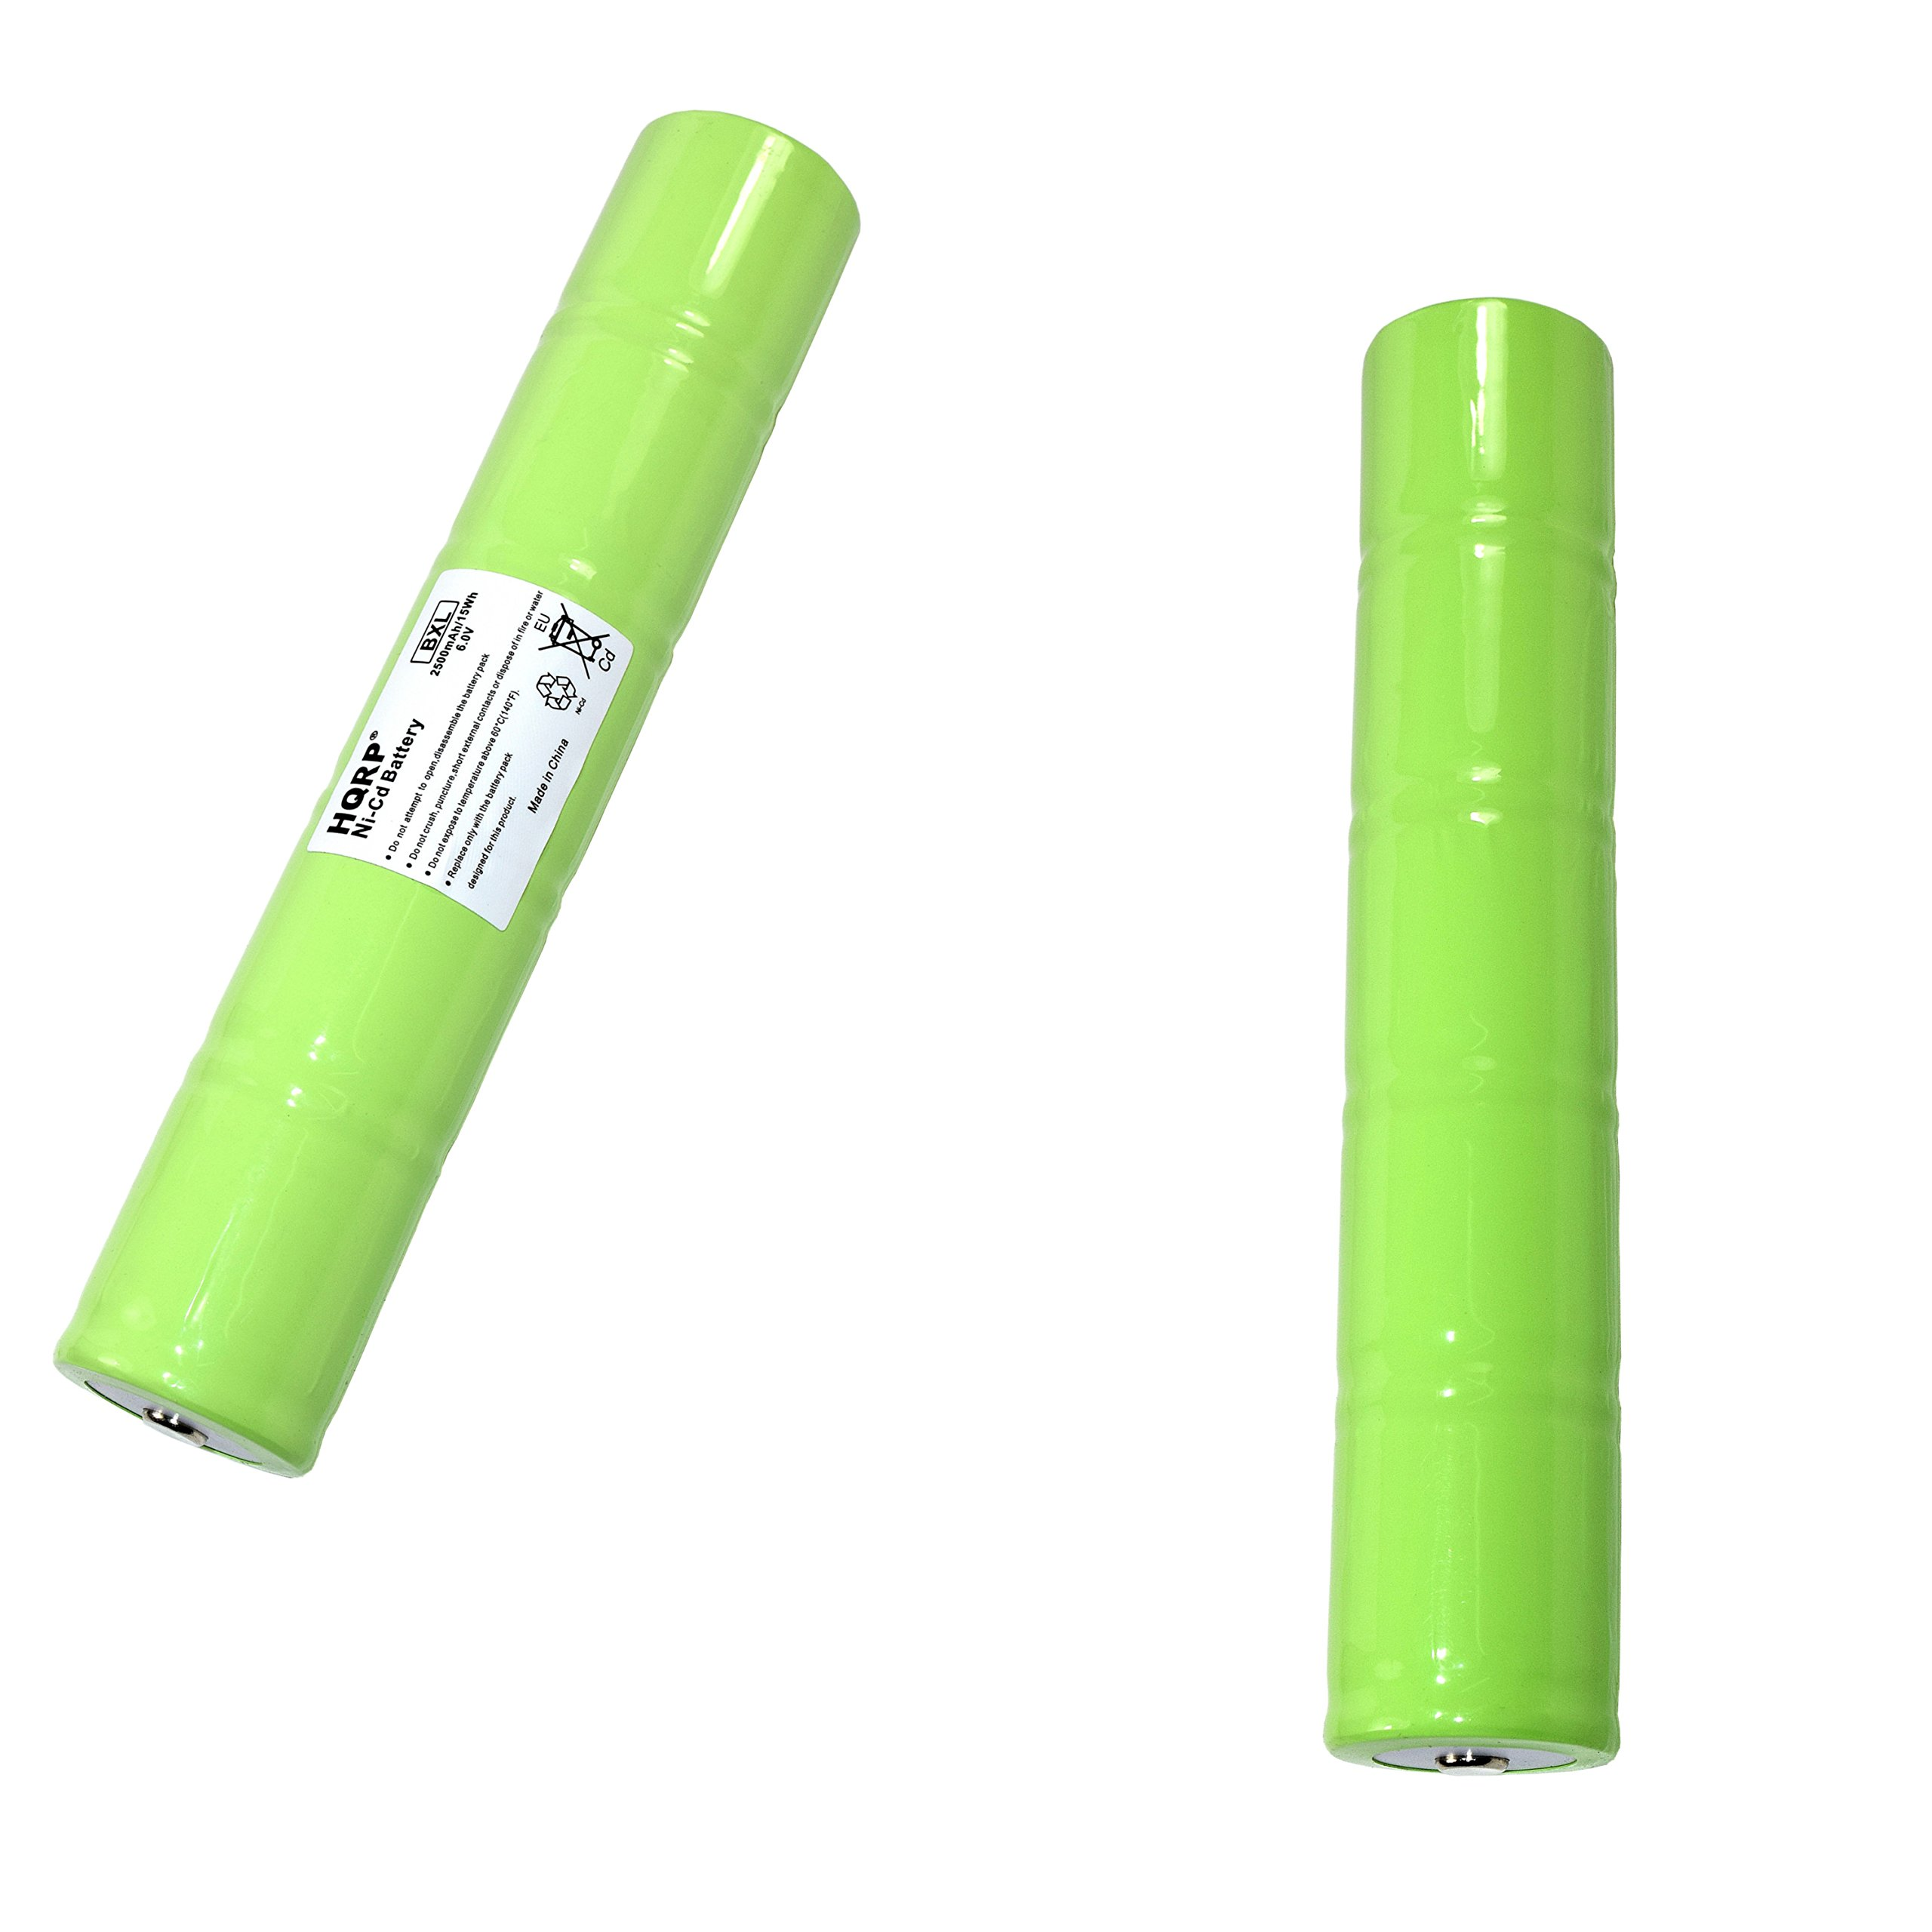 HQRP 2-Pack Battery for Moltech N38AF001A, Multiplier MSL20, S522 Plus HQRP Coaster